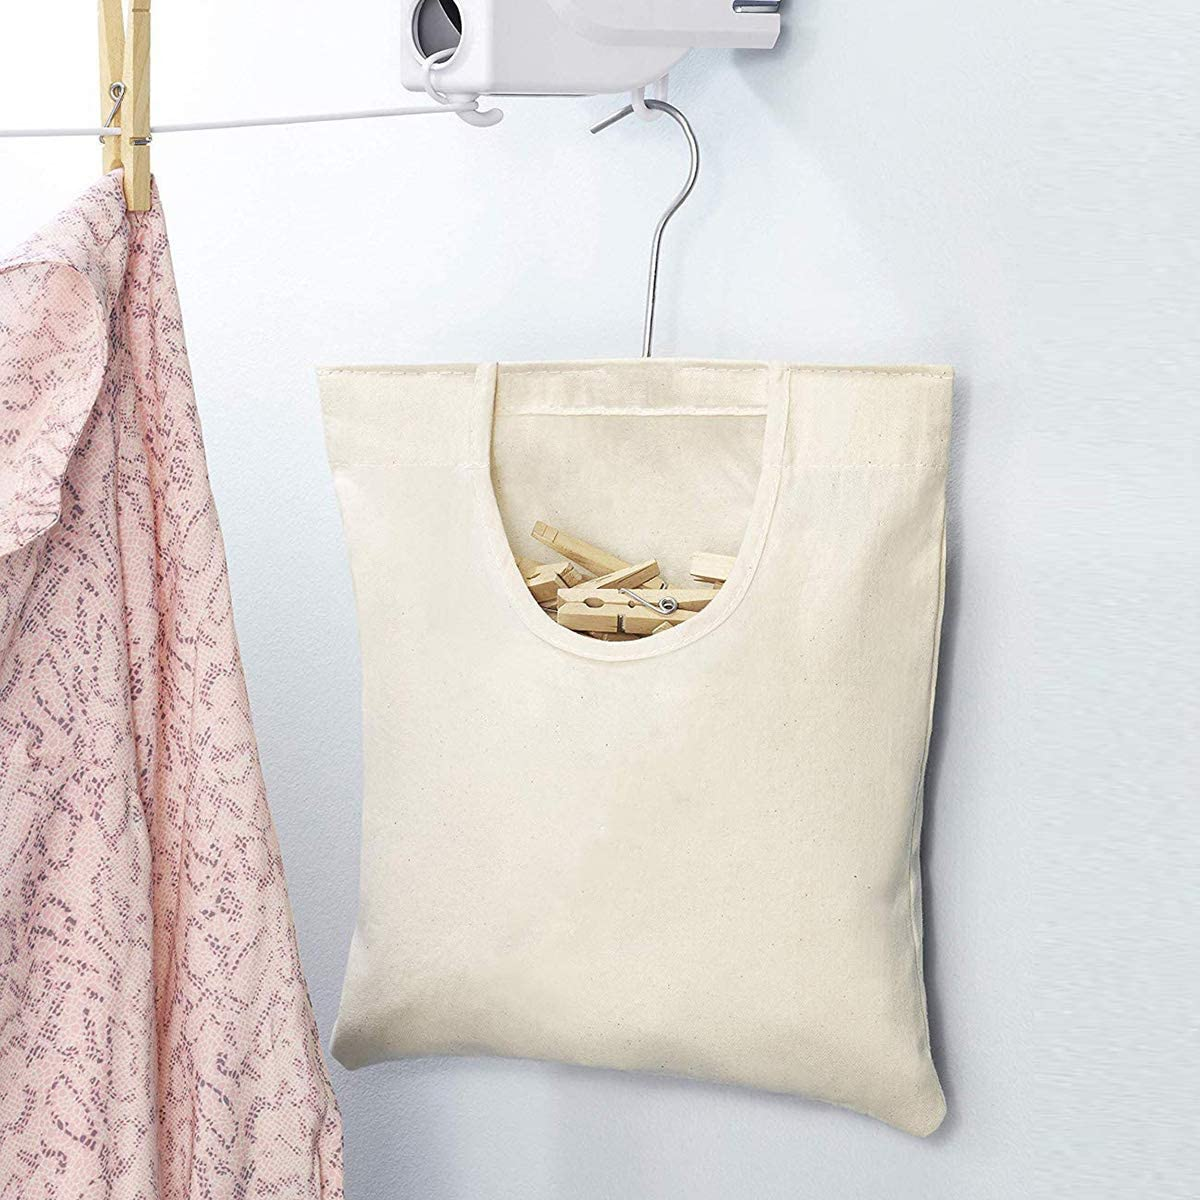 Clothespin Storage Bag Hanging Laundry Clothes Pin Organizer HelloCreate Outdoor Clothespin Storage Bag